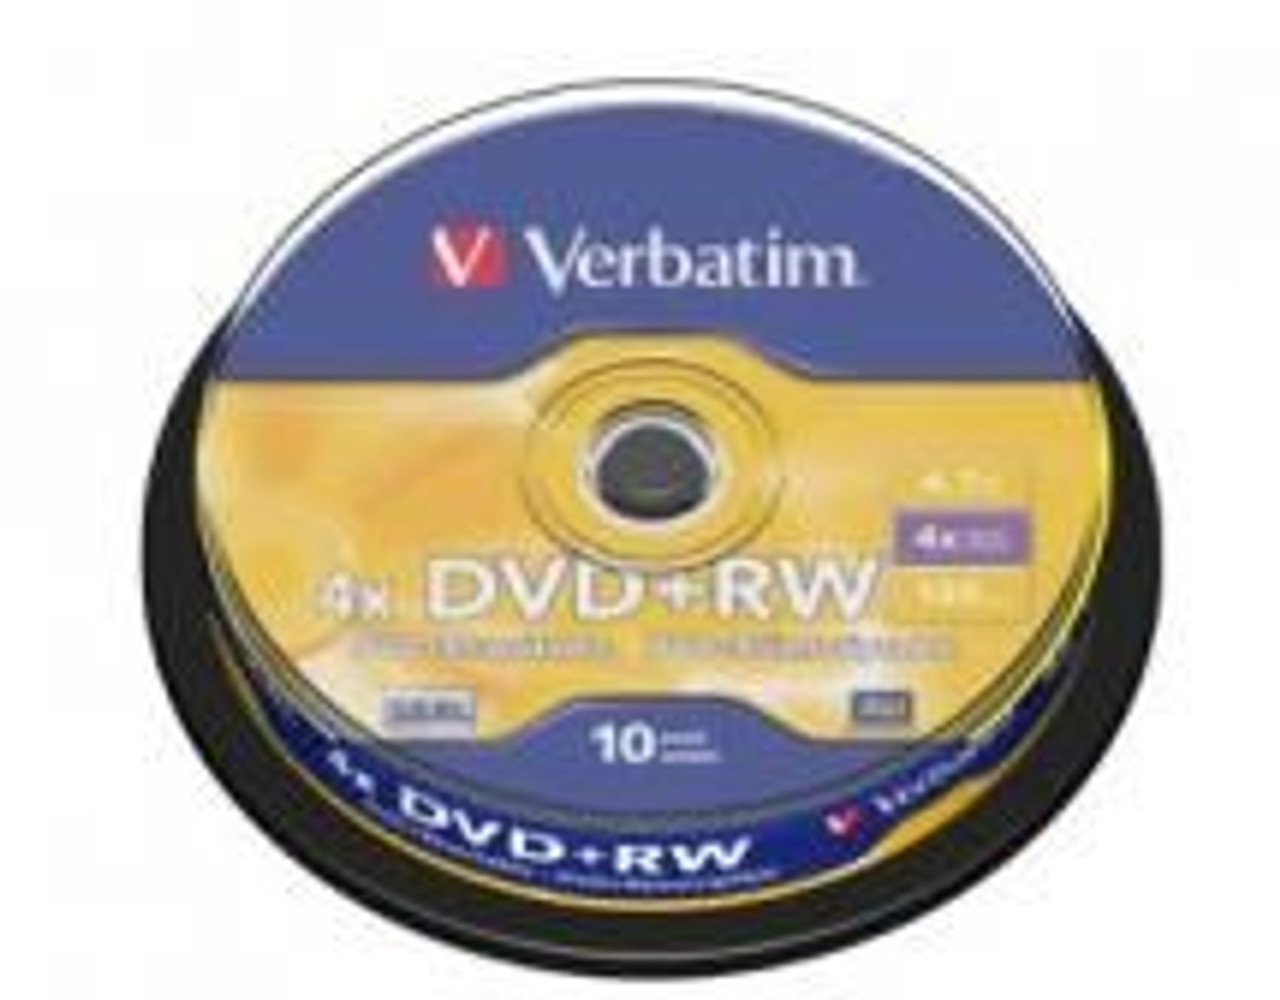 Image for Verbatim DVD+RW 4.7GB 10Pk Spindle 4x (43488) CX Computer Superstore